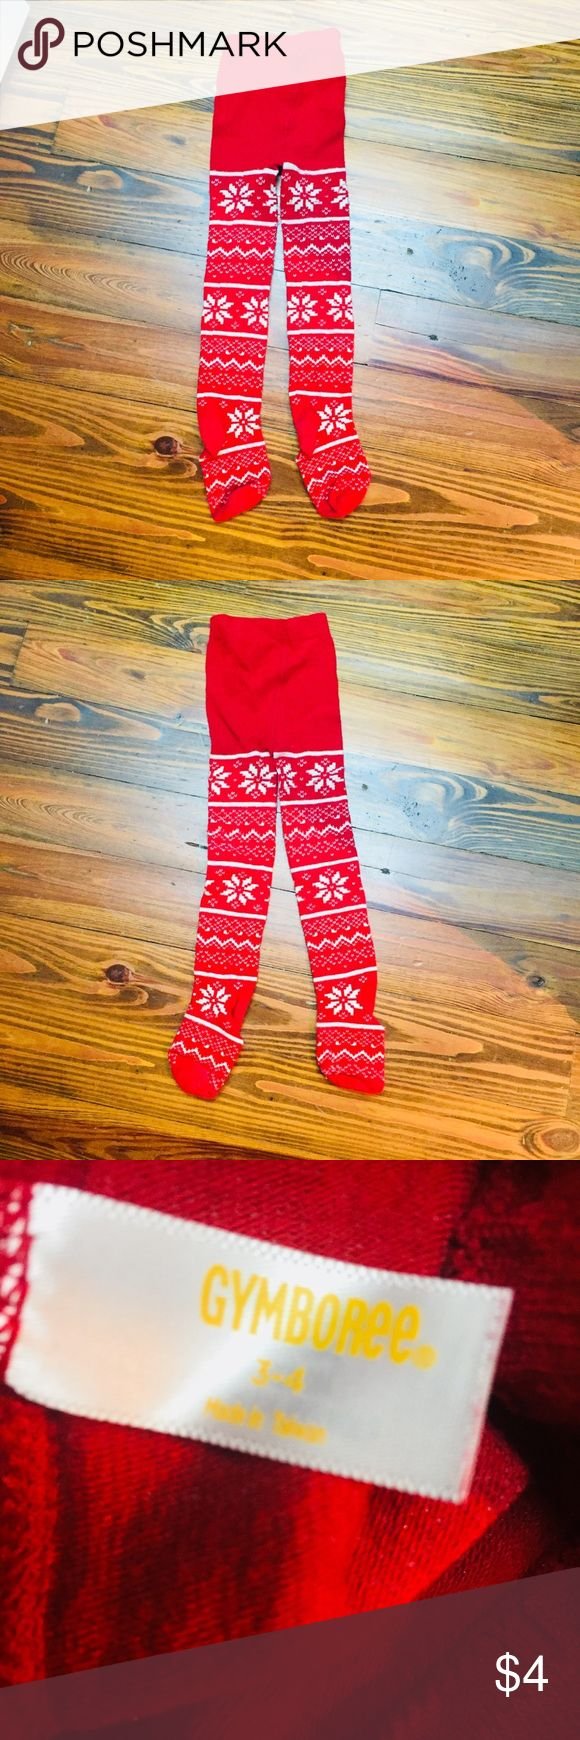 Gymboree Christmas Tights Gymboree Christmas Tights. Size 3-4pm. Light wear, no stains or holes. Smoke and pet free home. Bundle and save, offers welcome! Gymboree Accessories Socks & Tights